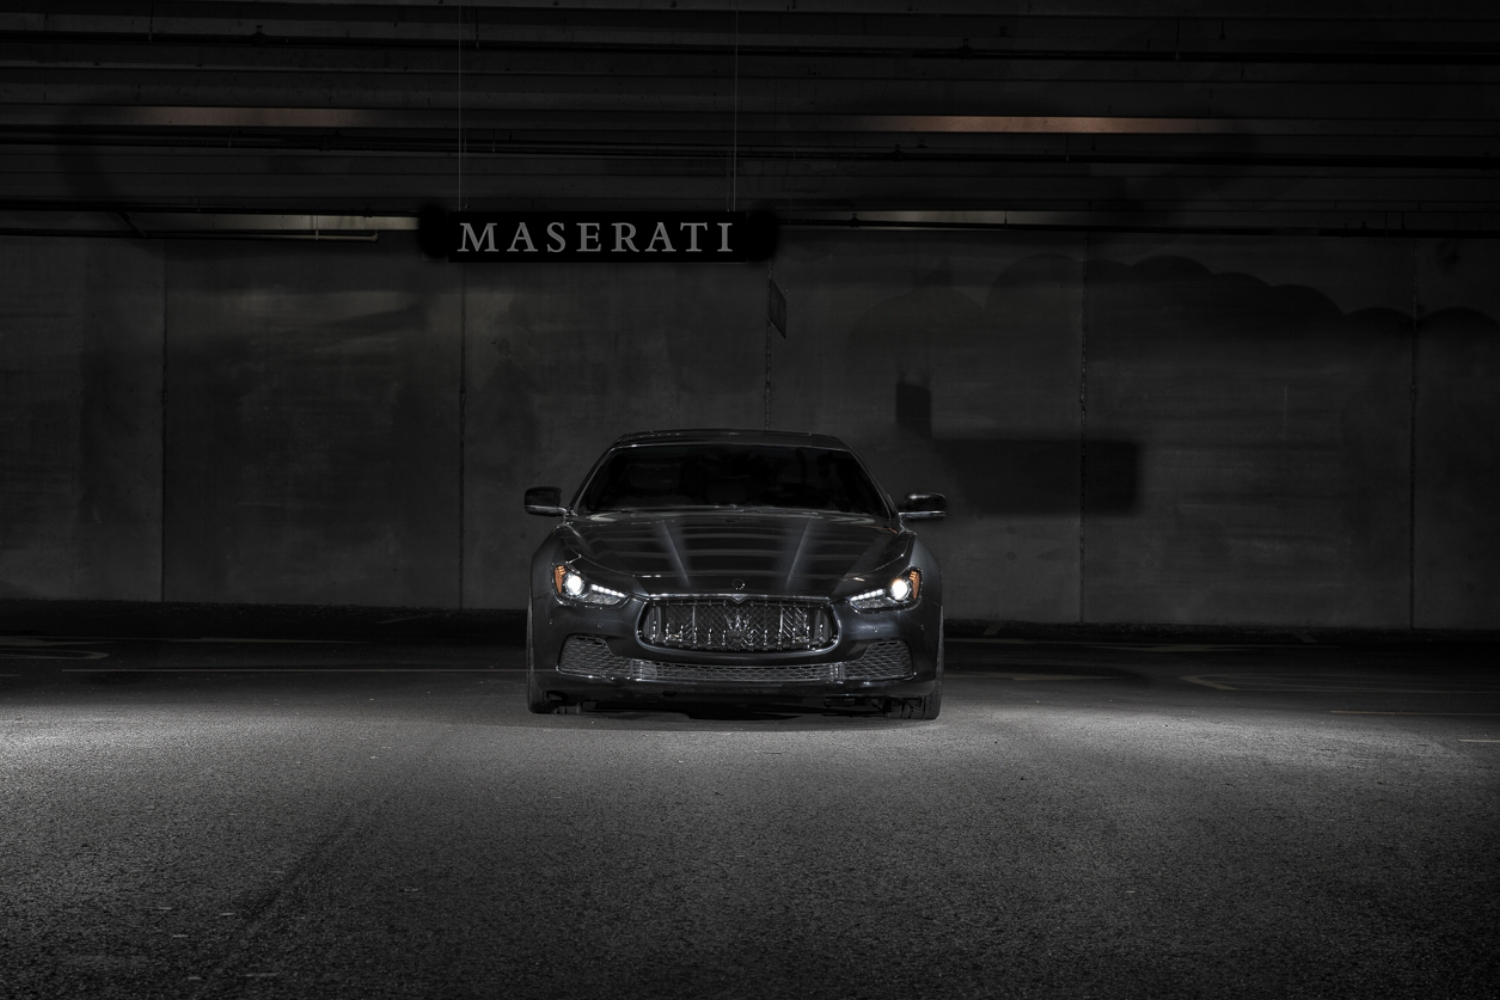 maserati ghibli vossen wheels — the auto art